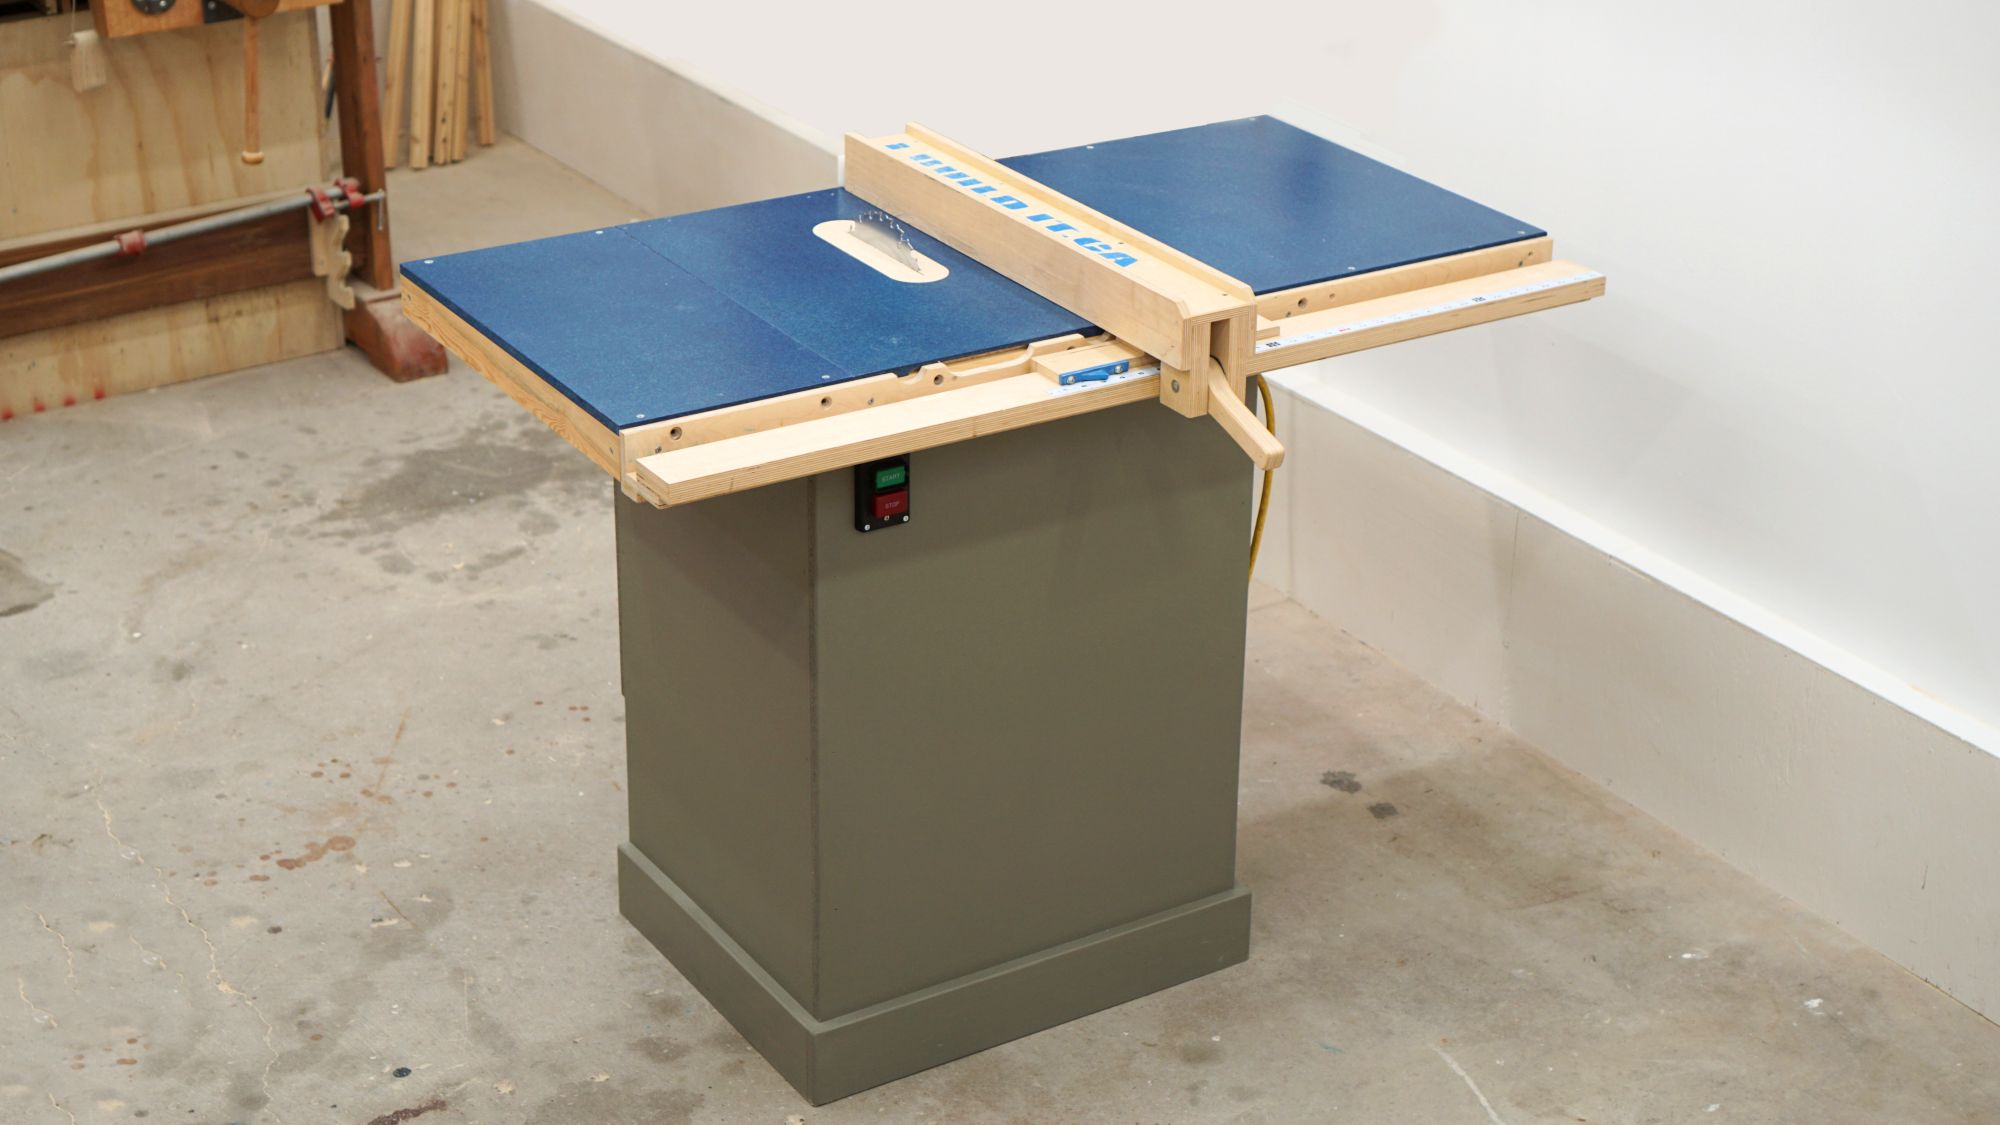 Table Saw Plans Ibuildit Ca